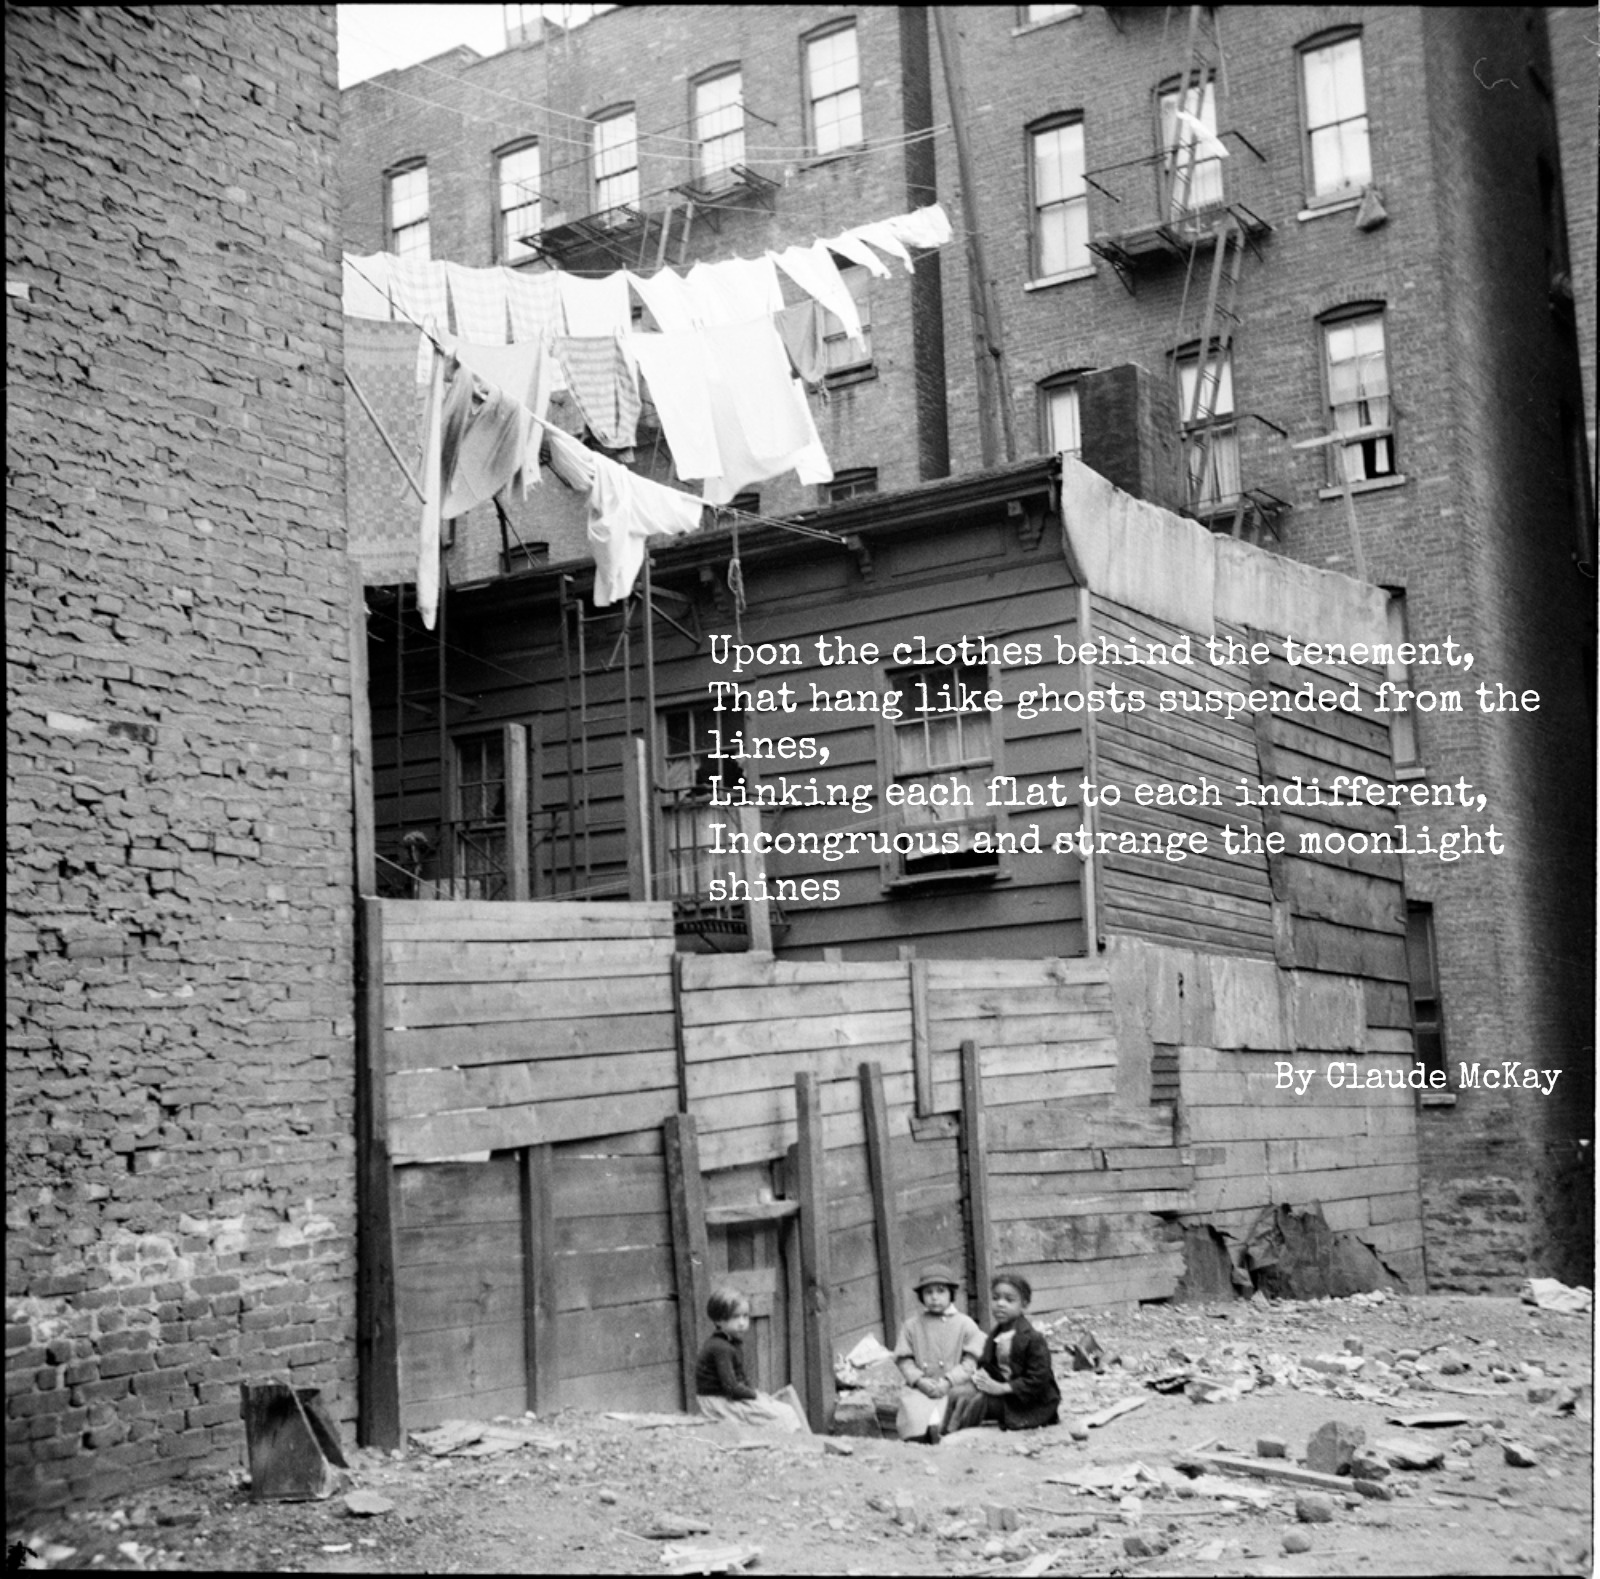 the best poems about new york city boo york city hires arnold eagle tenements acirccopymcny new york tenements